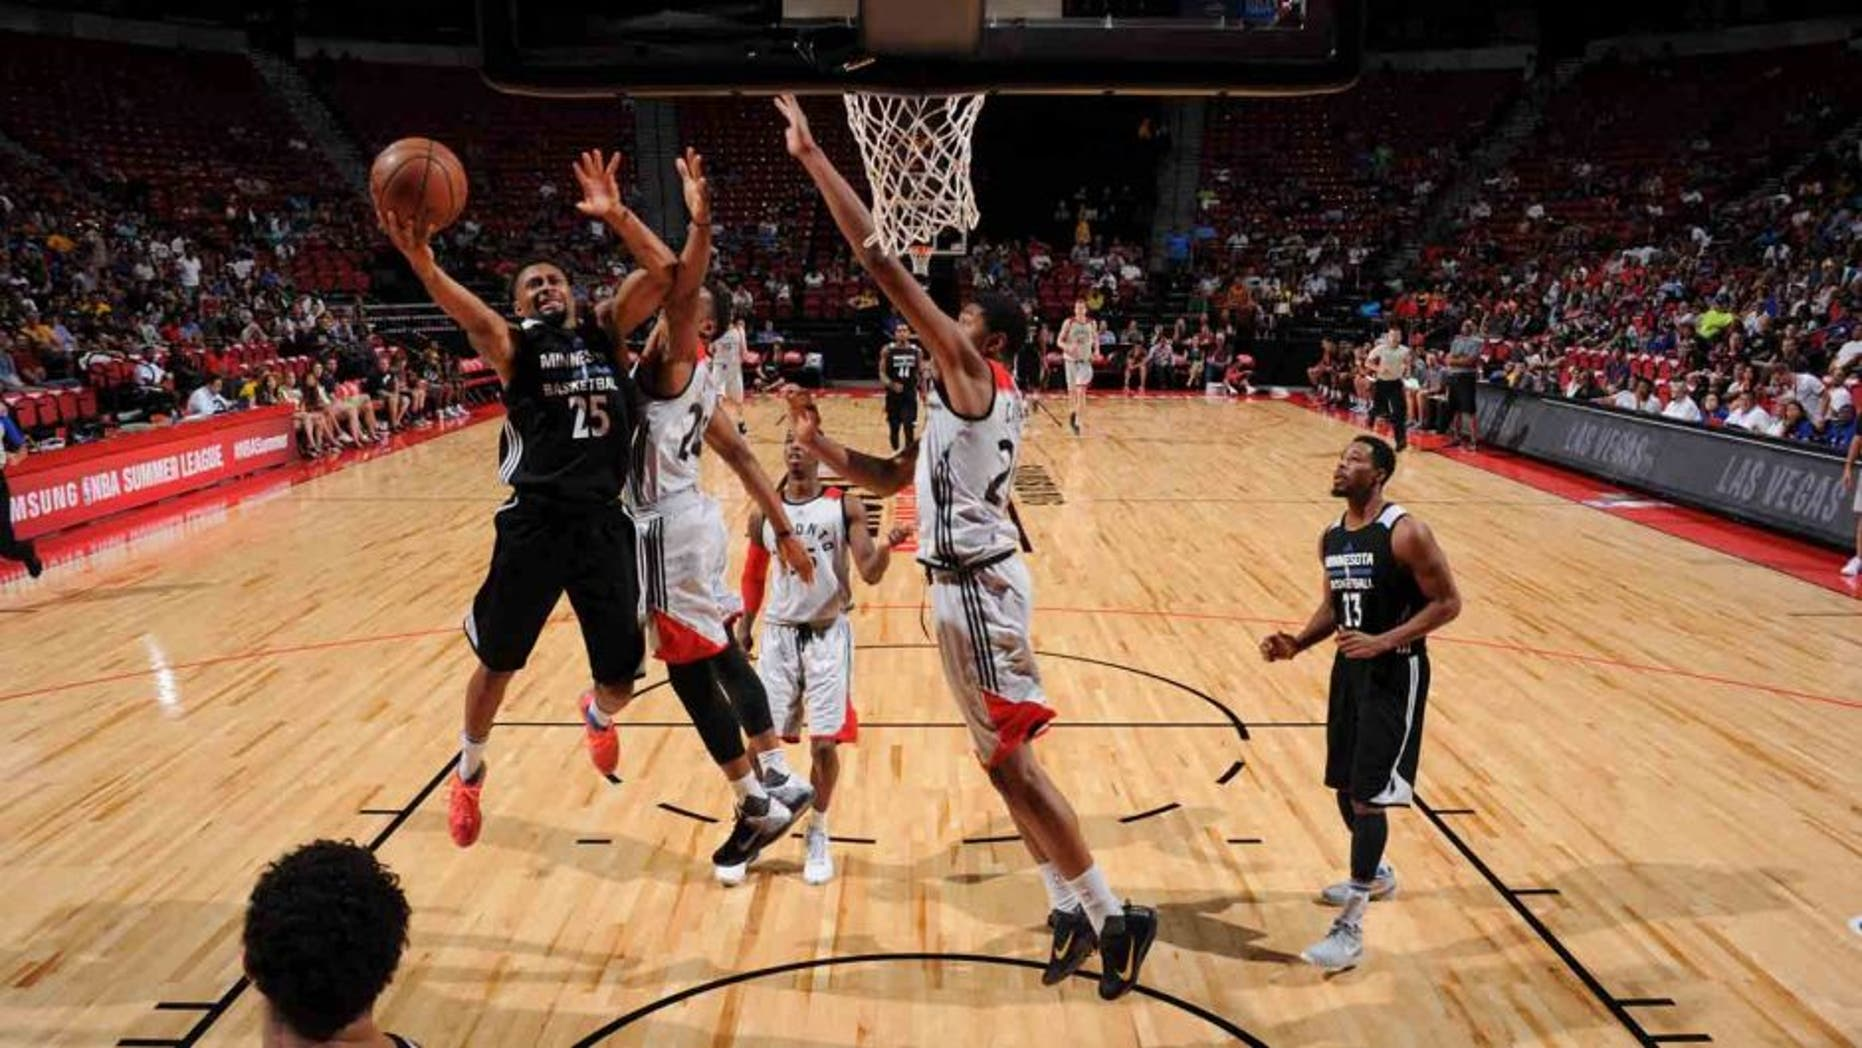 The Minnesota Timberwolves' Xavier Silas shoots the ball against the Toronto Raptors during the 2016 Las Vegas Summer League on July 16, 2016, at the Thomas & Mack Center in Las Vegas.